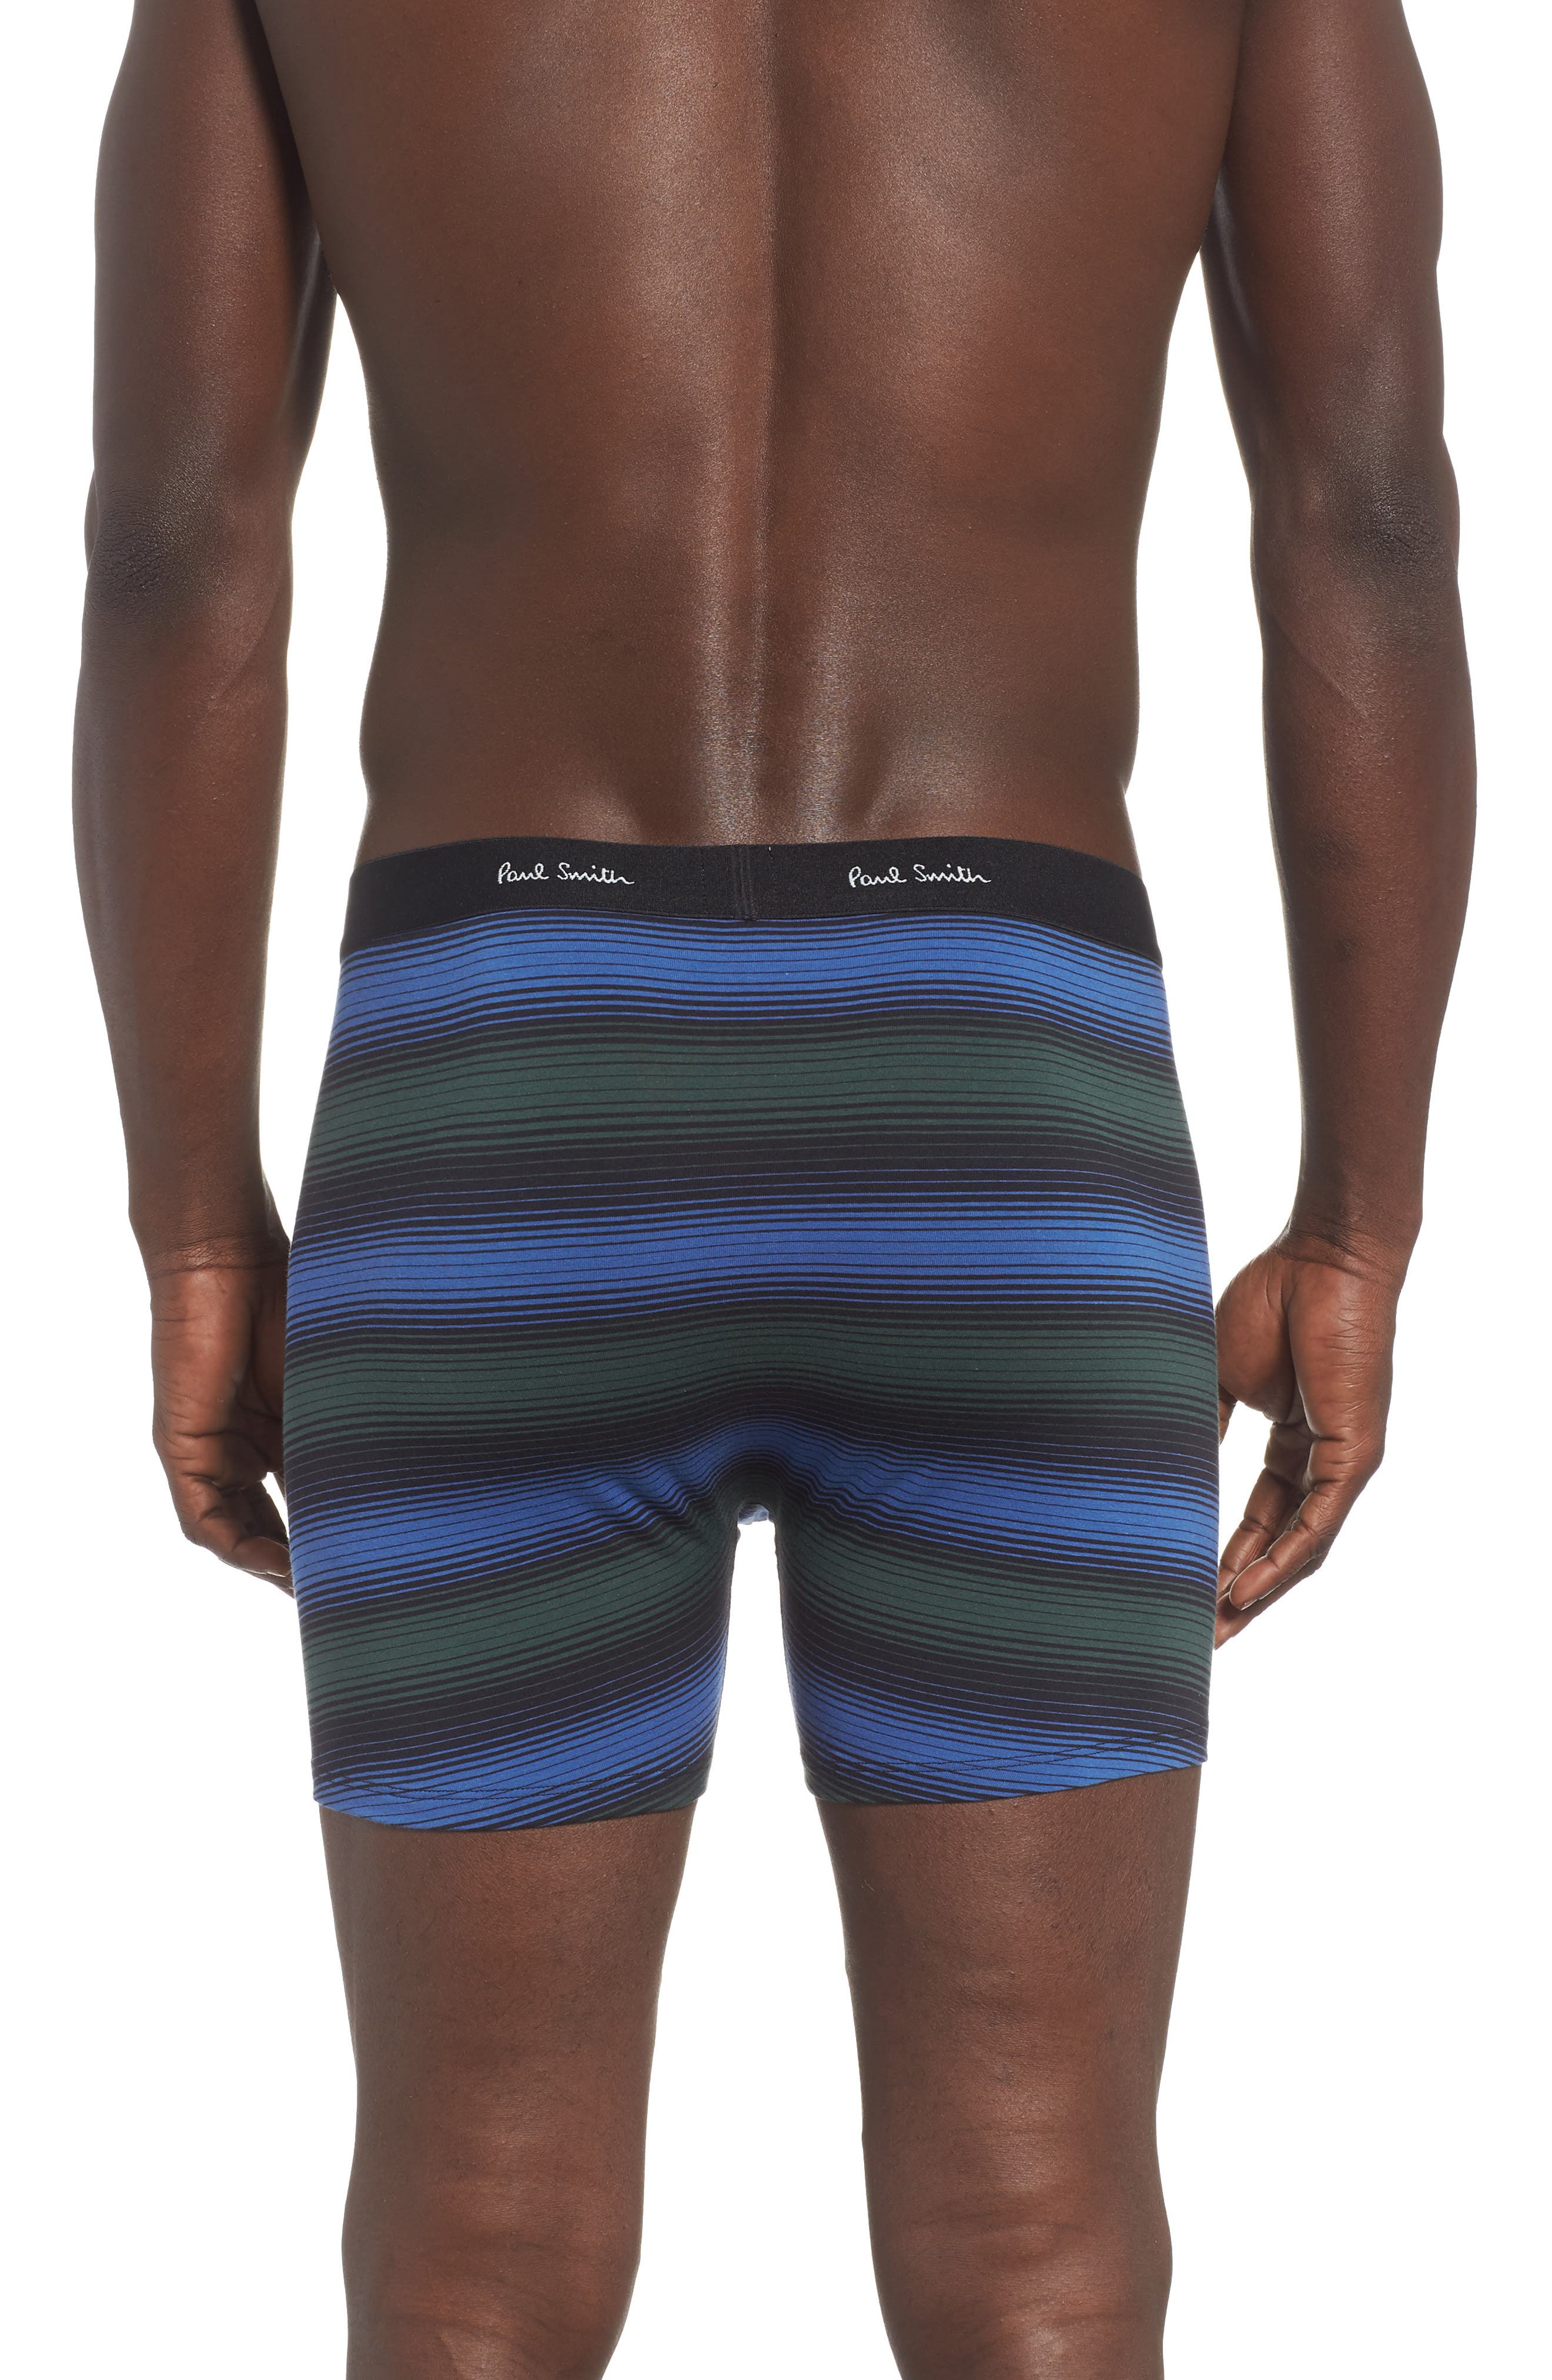 Stripe Boxer Briefs,                             Alternate thumbnail 2, color,                             BLUE/ BLACK/ GREEN